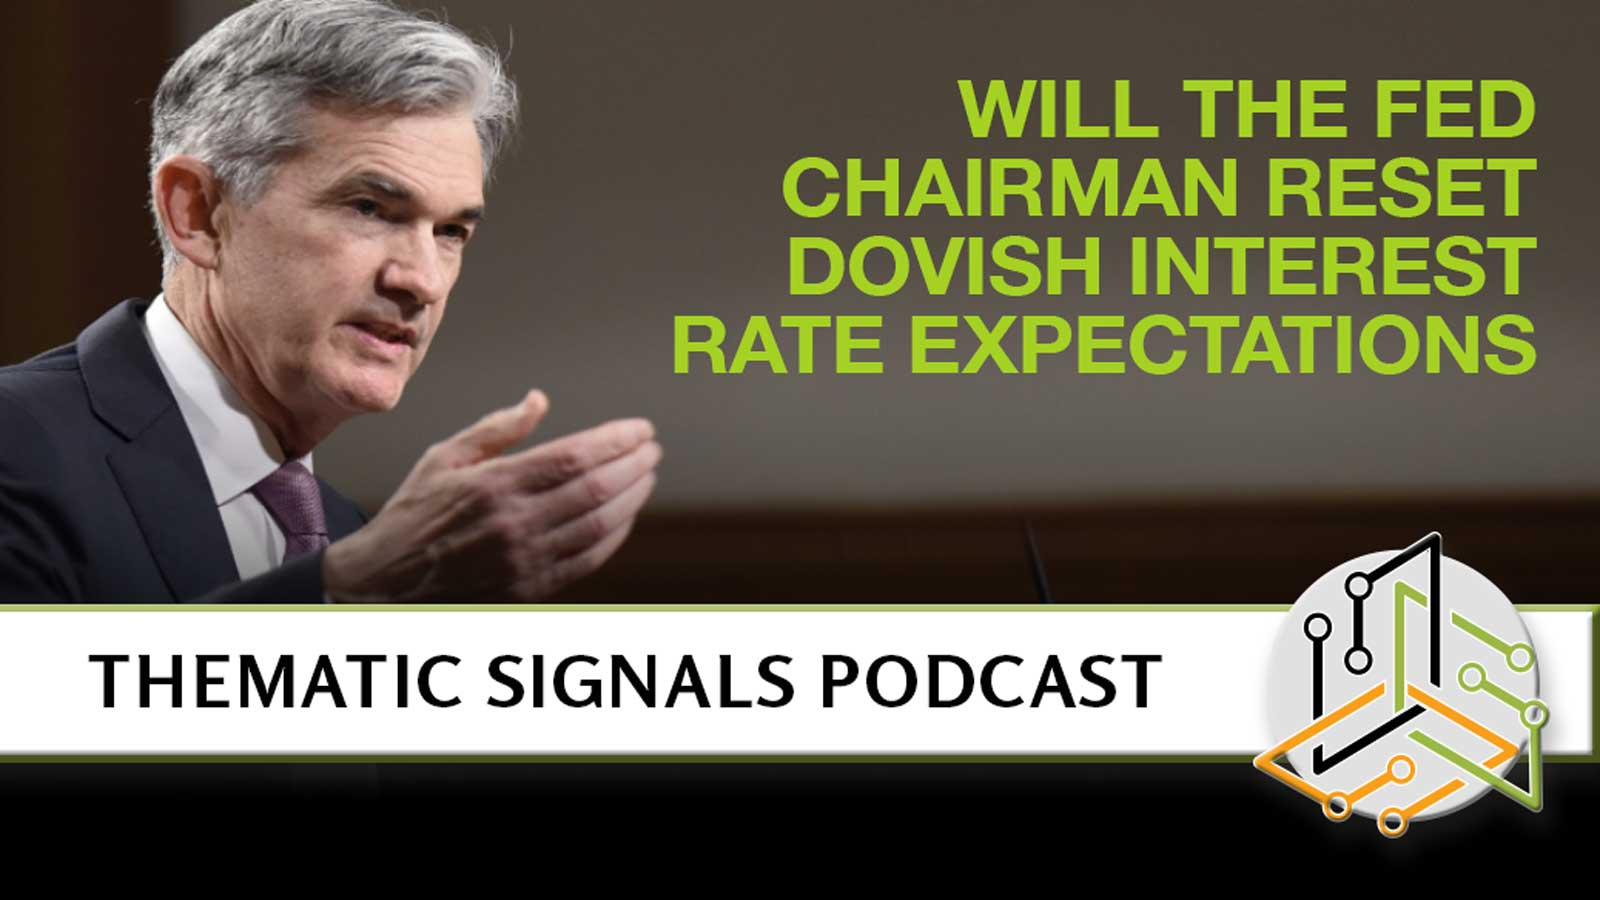 Ep 8. Will Fed Chairman Powell reset dovish interest rate expectations this week?